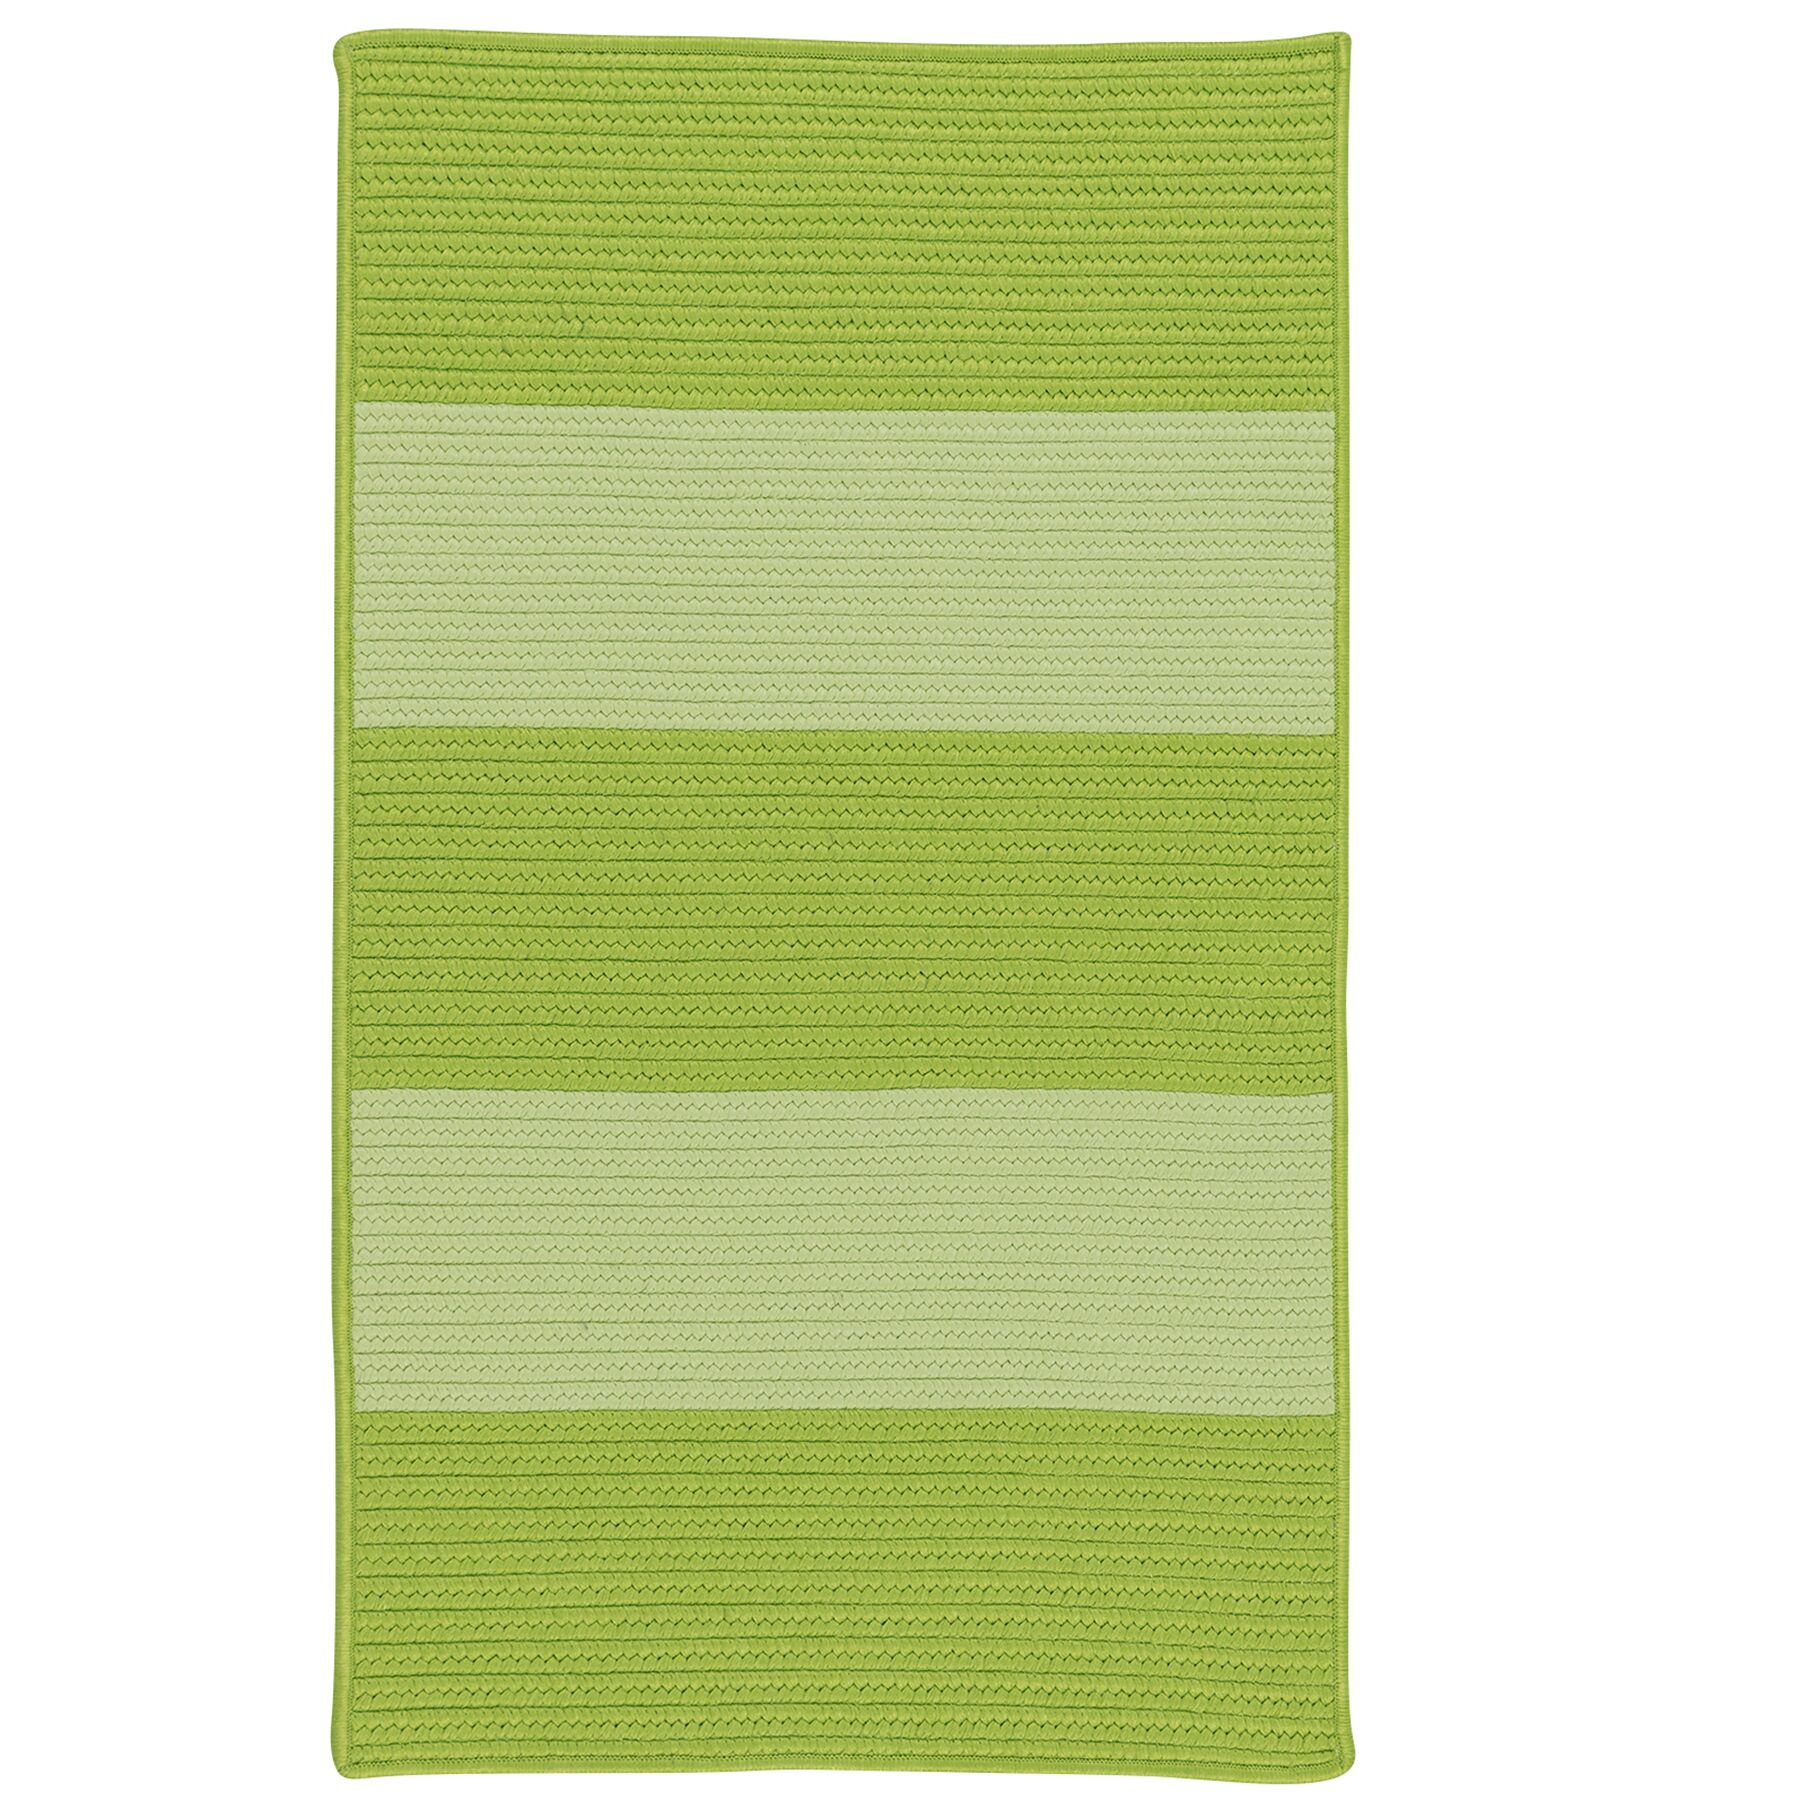 Javen Hand-Braided Green Indoor/Outdoor Area Rug Rug Size: Rectangle 8' x 11'